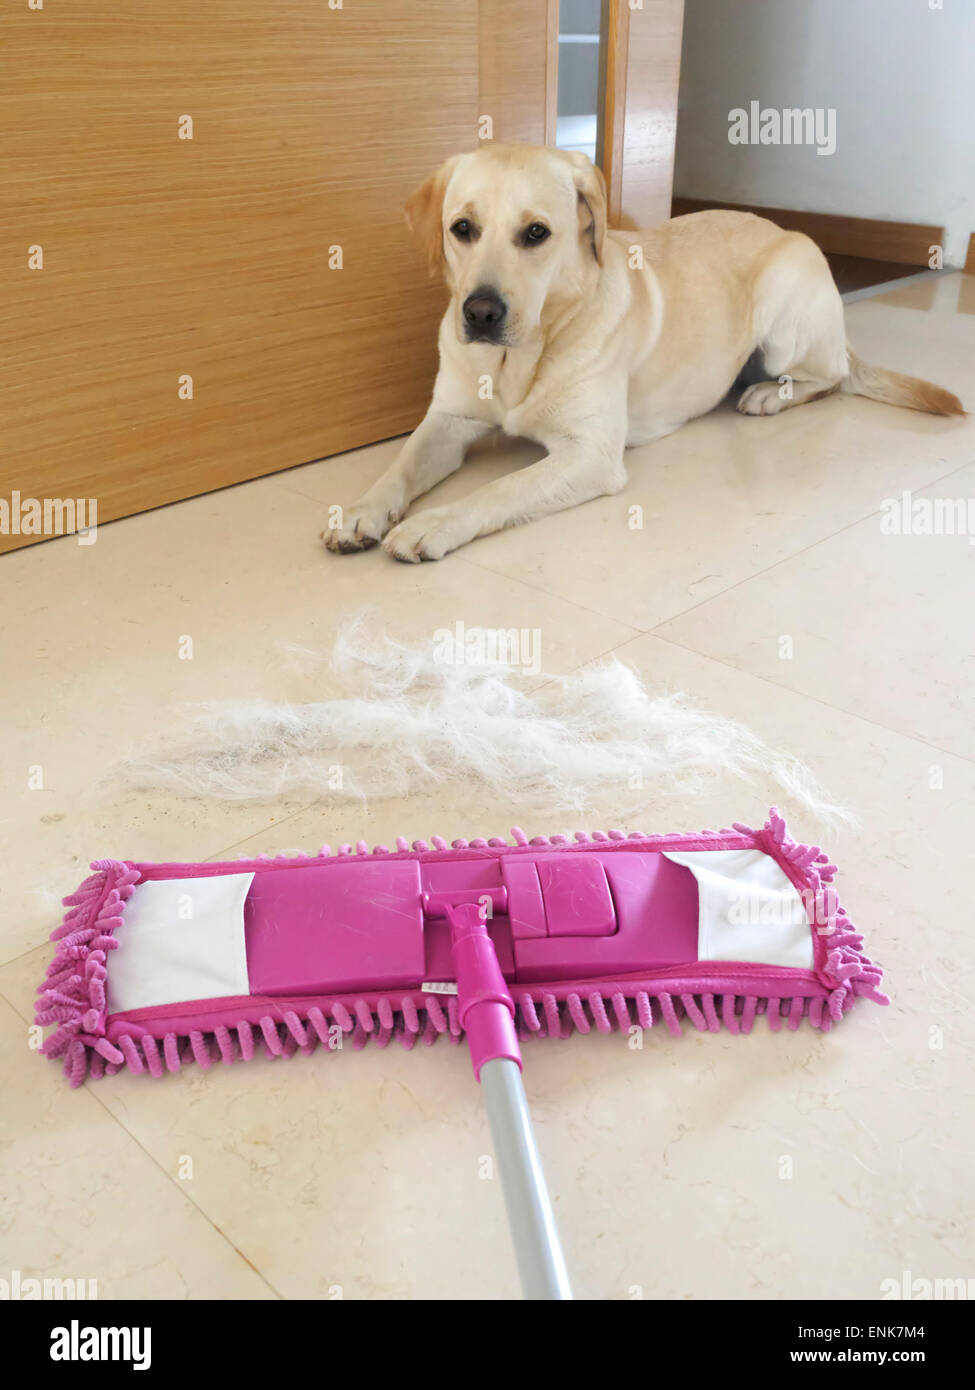 Microfiber mop cleaning dog's hair from the floor - Stock Image